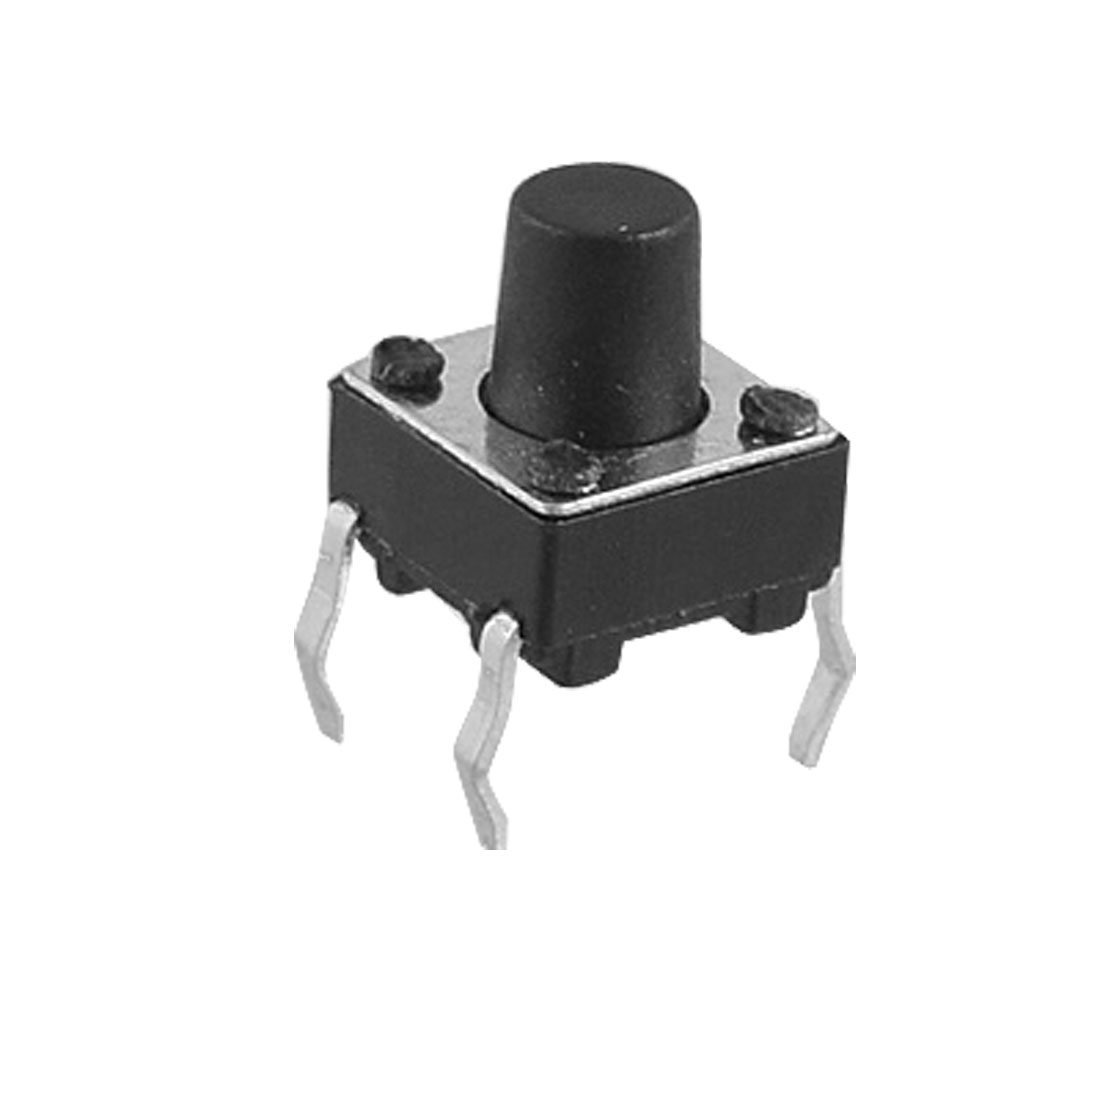 Black Round Push Button Momentary Tactile Tact Switch 6 x 6 x 7mm 10 Pcs